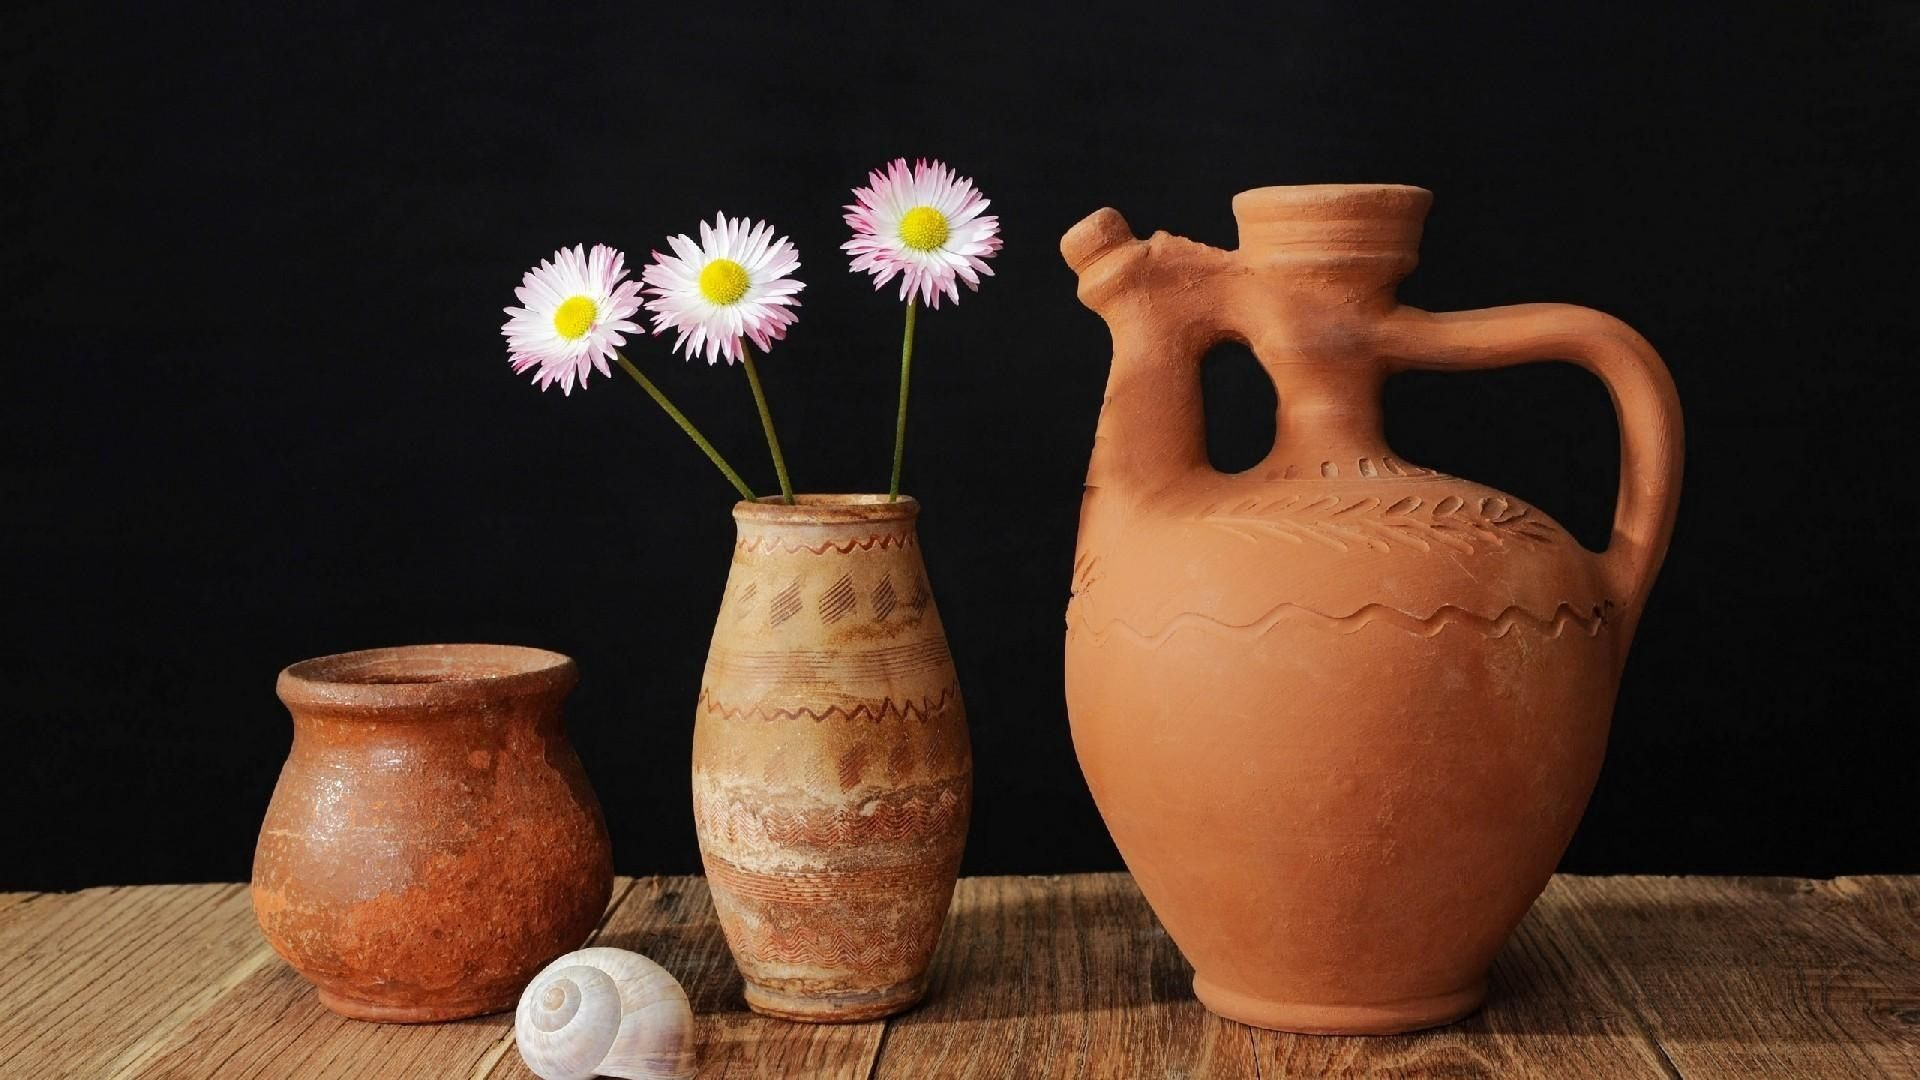 1920x1080 Download wallpaper 1920x1080 daisy, jug, shell, table, pottery full ...